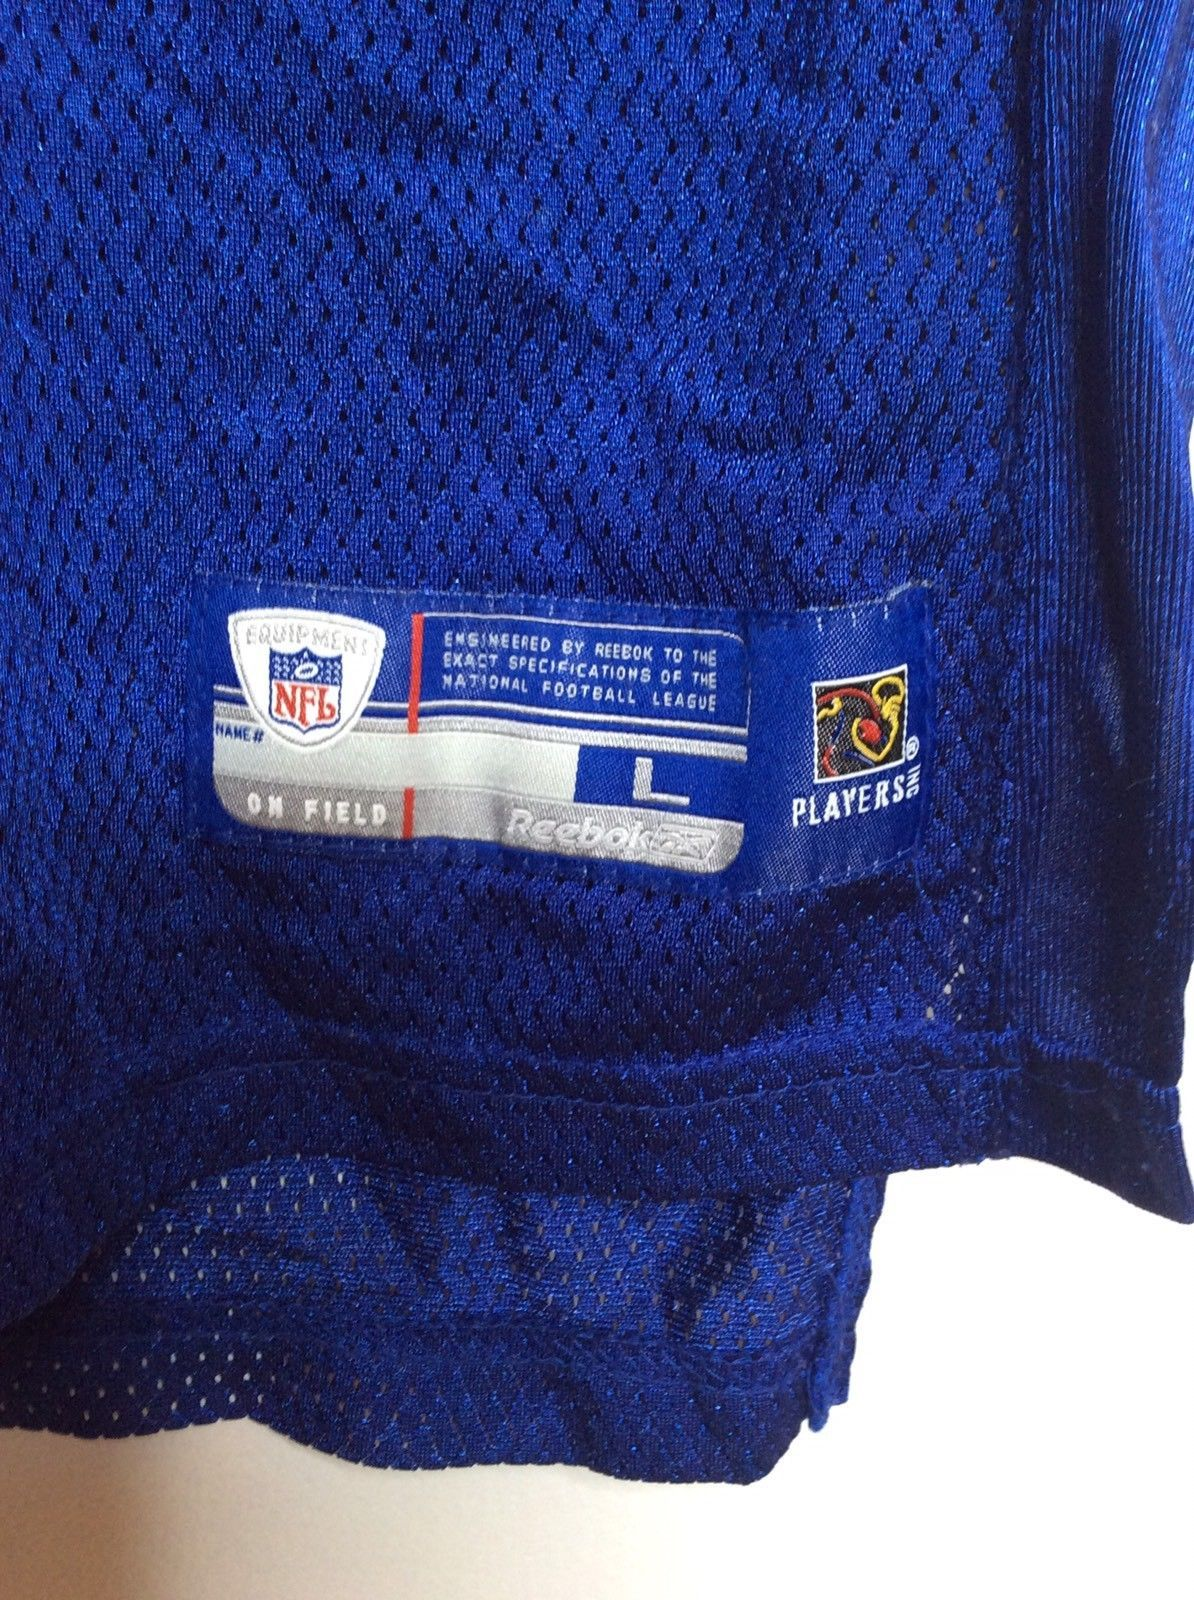 Reebok NFL New York Giants 21 Tiki Barber Football Jersey Blue Youth Large 14-16 image 6